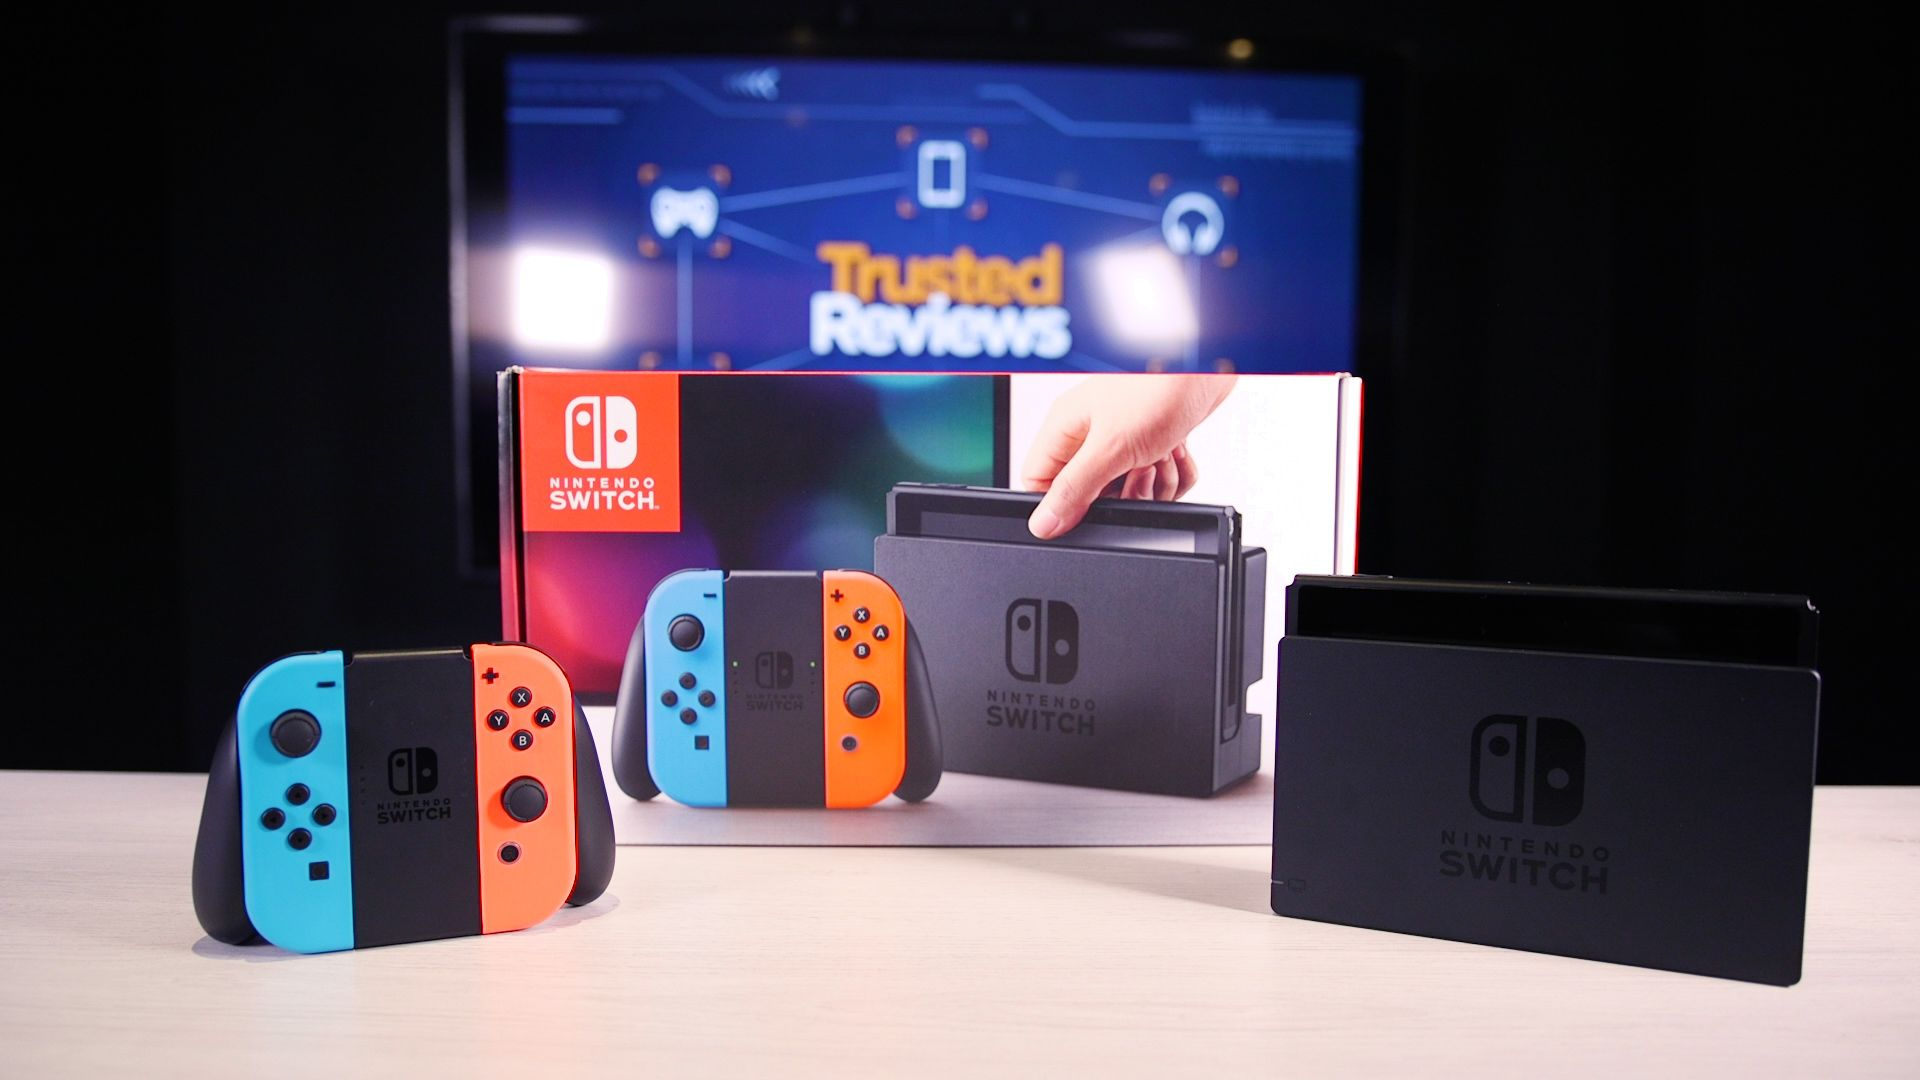 Nintendo Switch Review The Most Exciting Game Console Https Www Socialimagesshare Com I In 2020 Game Console Nintendo Switch First Nintendo